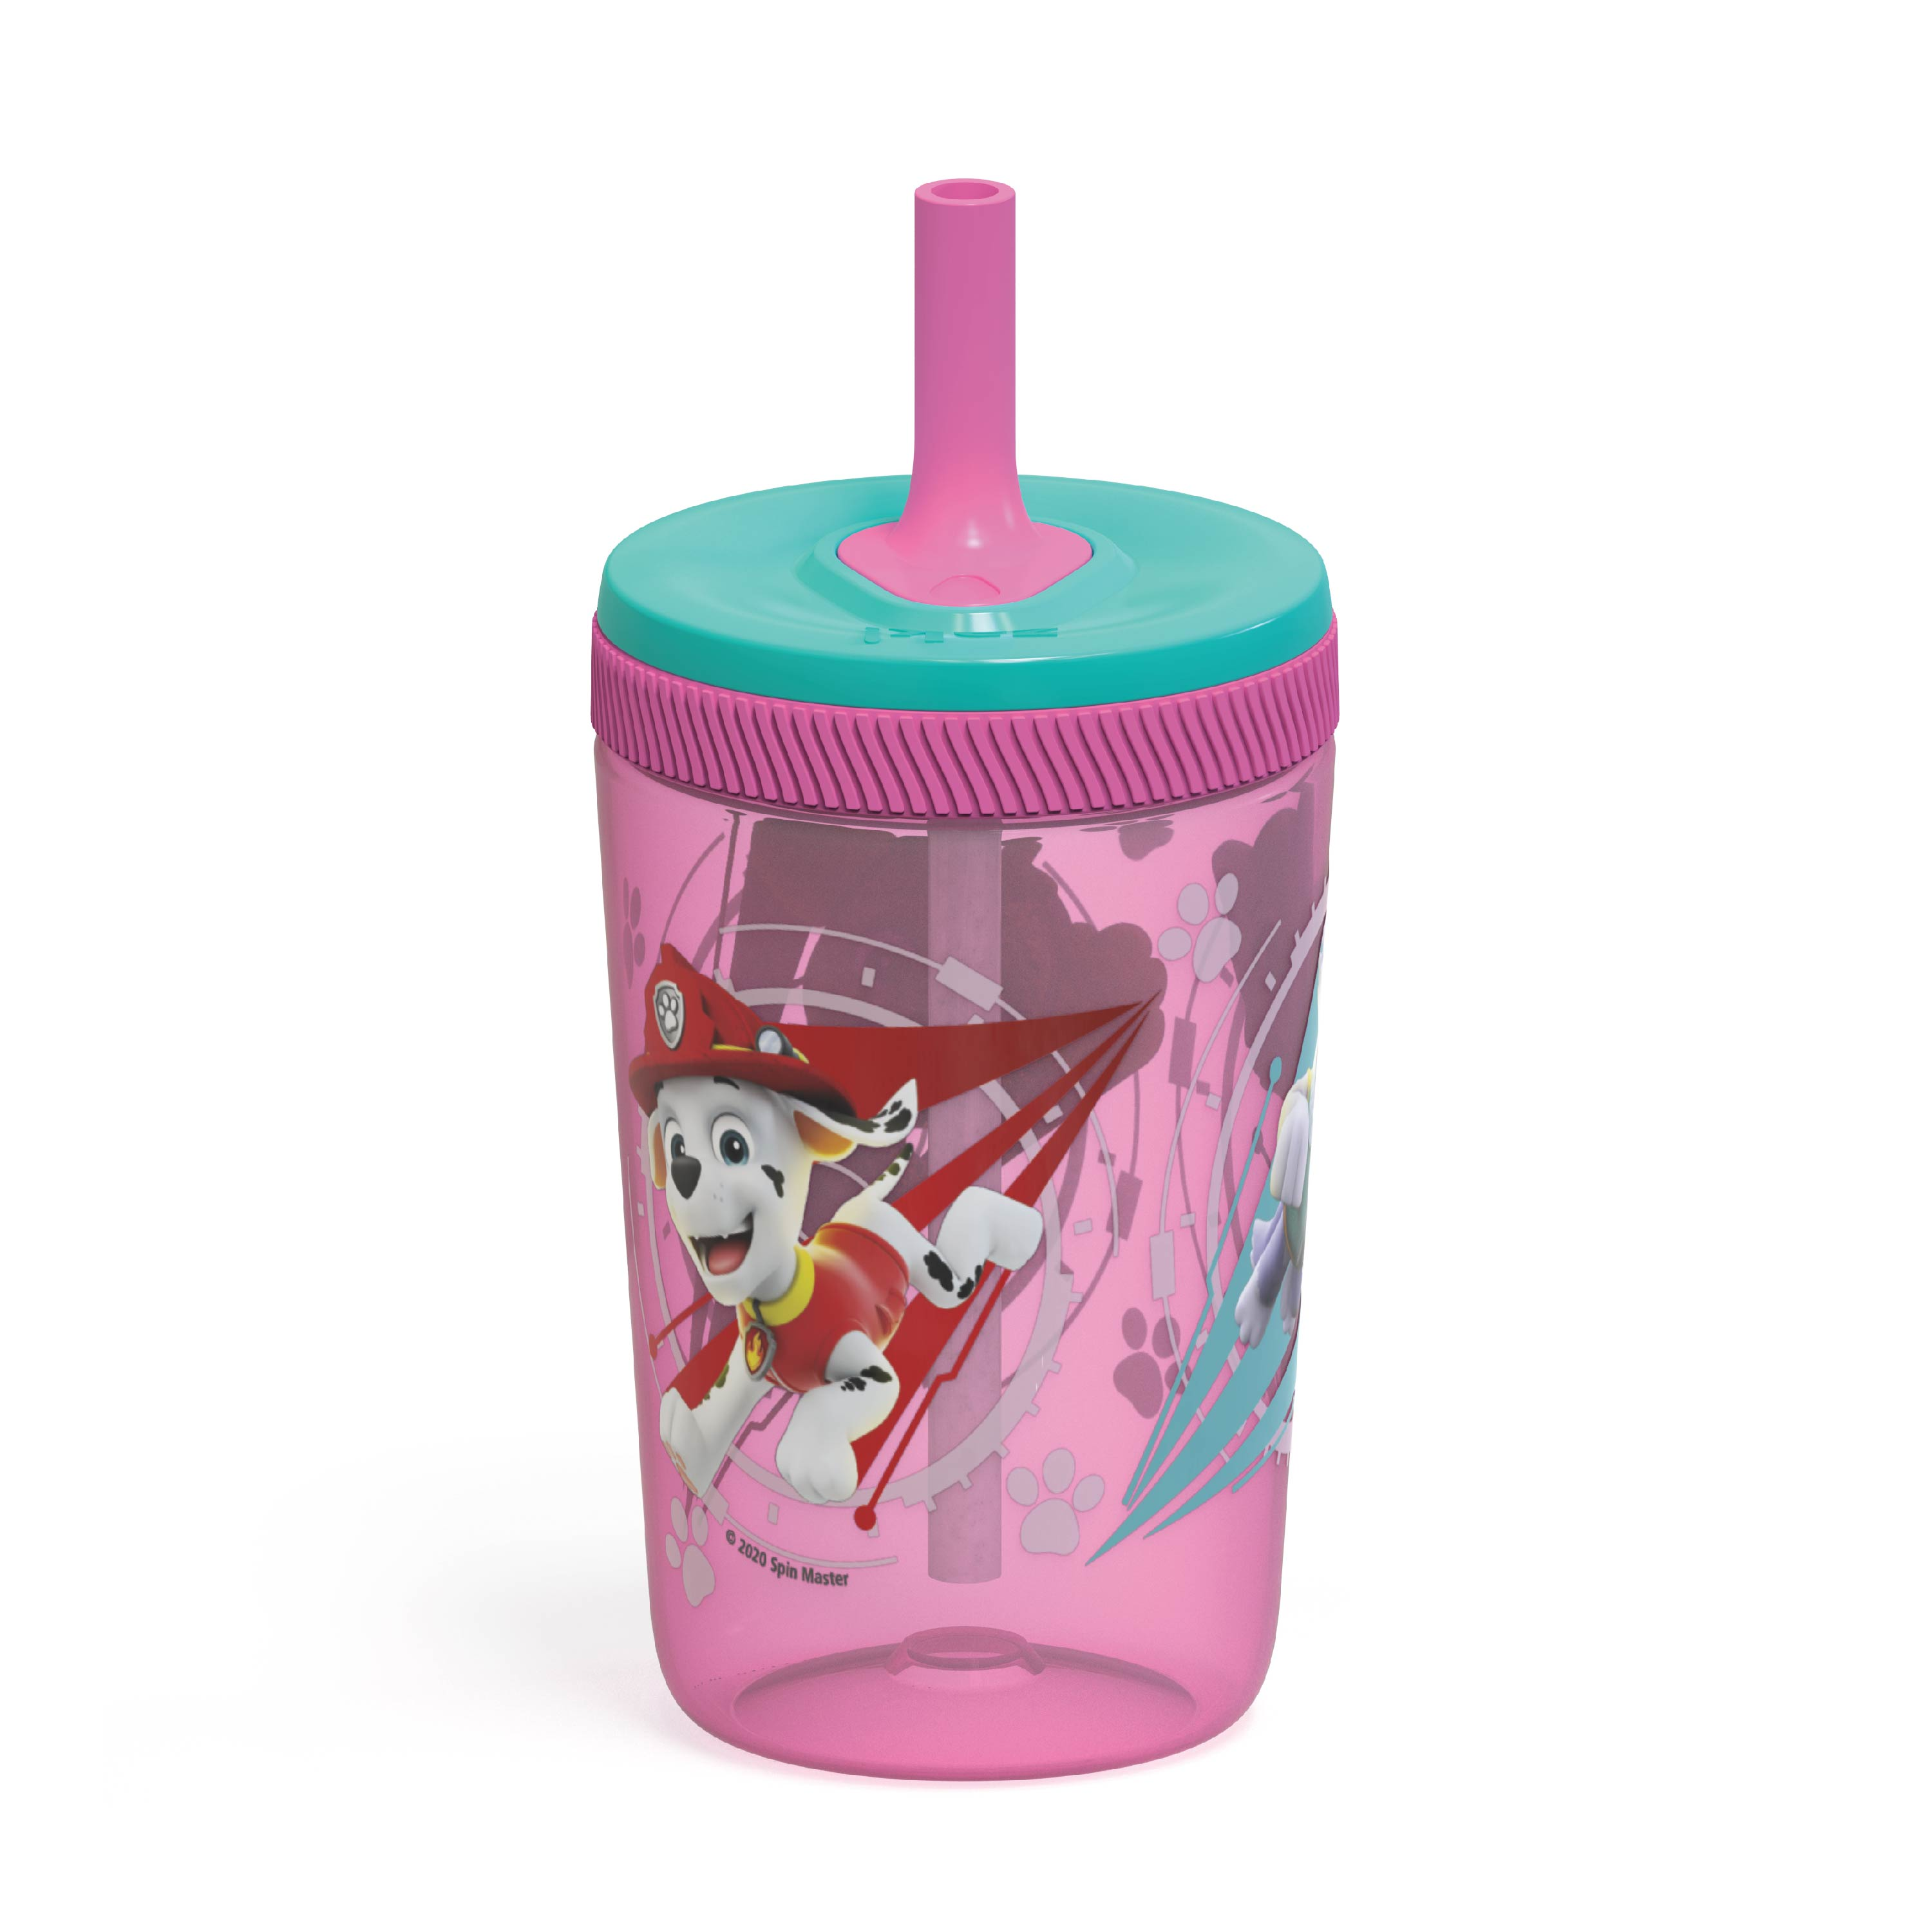 Paw Patrol 15  ounce Plastic Tumbler with Lid and Straw, Marshall and Skye, 2-piece set slideshow image 2